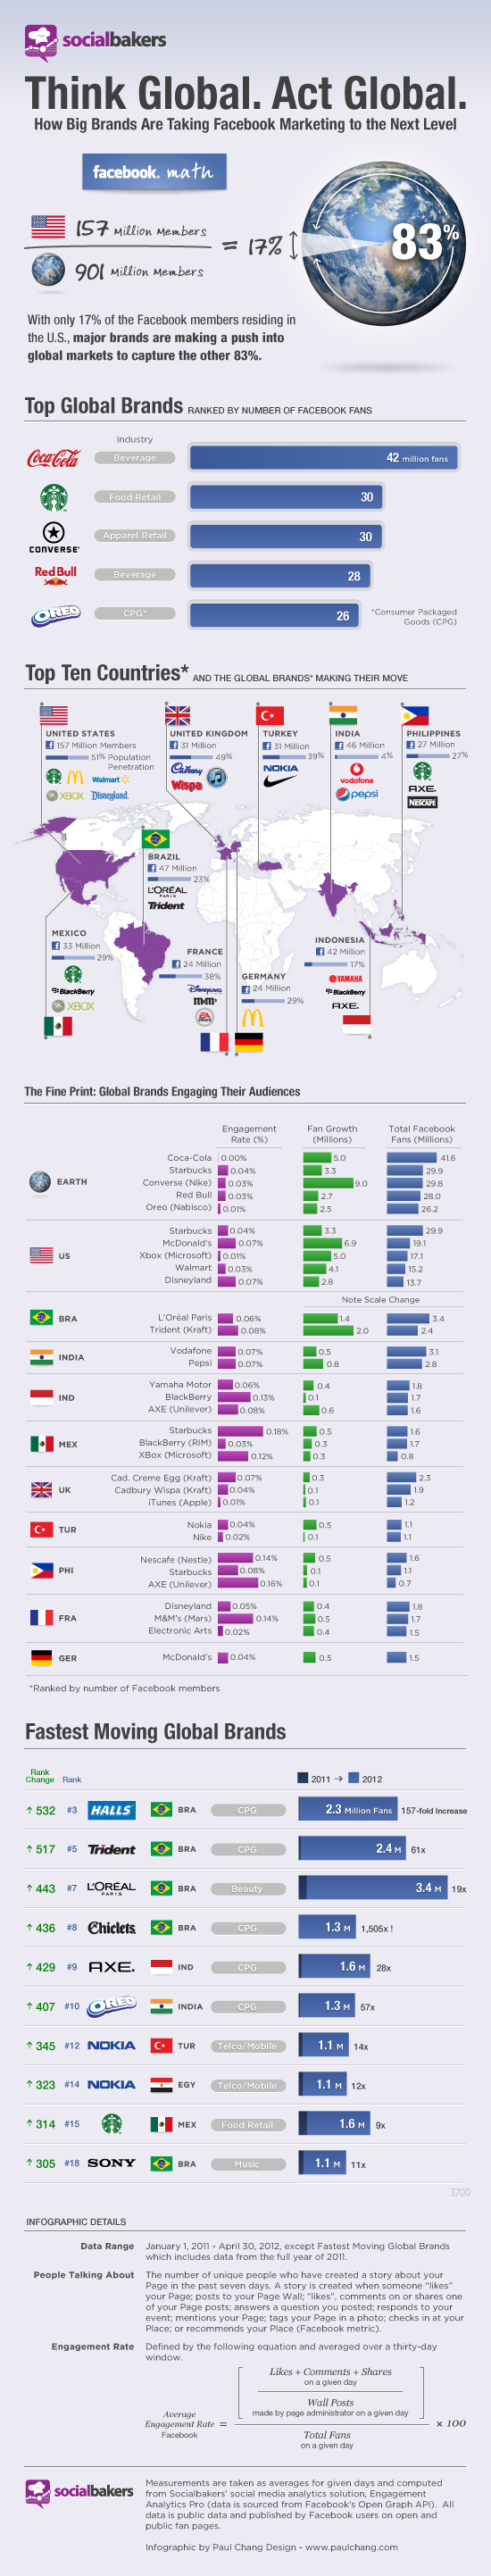 Facebook brands infographic Facebook Helps Brands Drive Growth in Emerging Markets [Infographic]